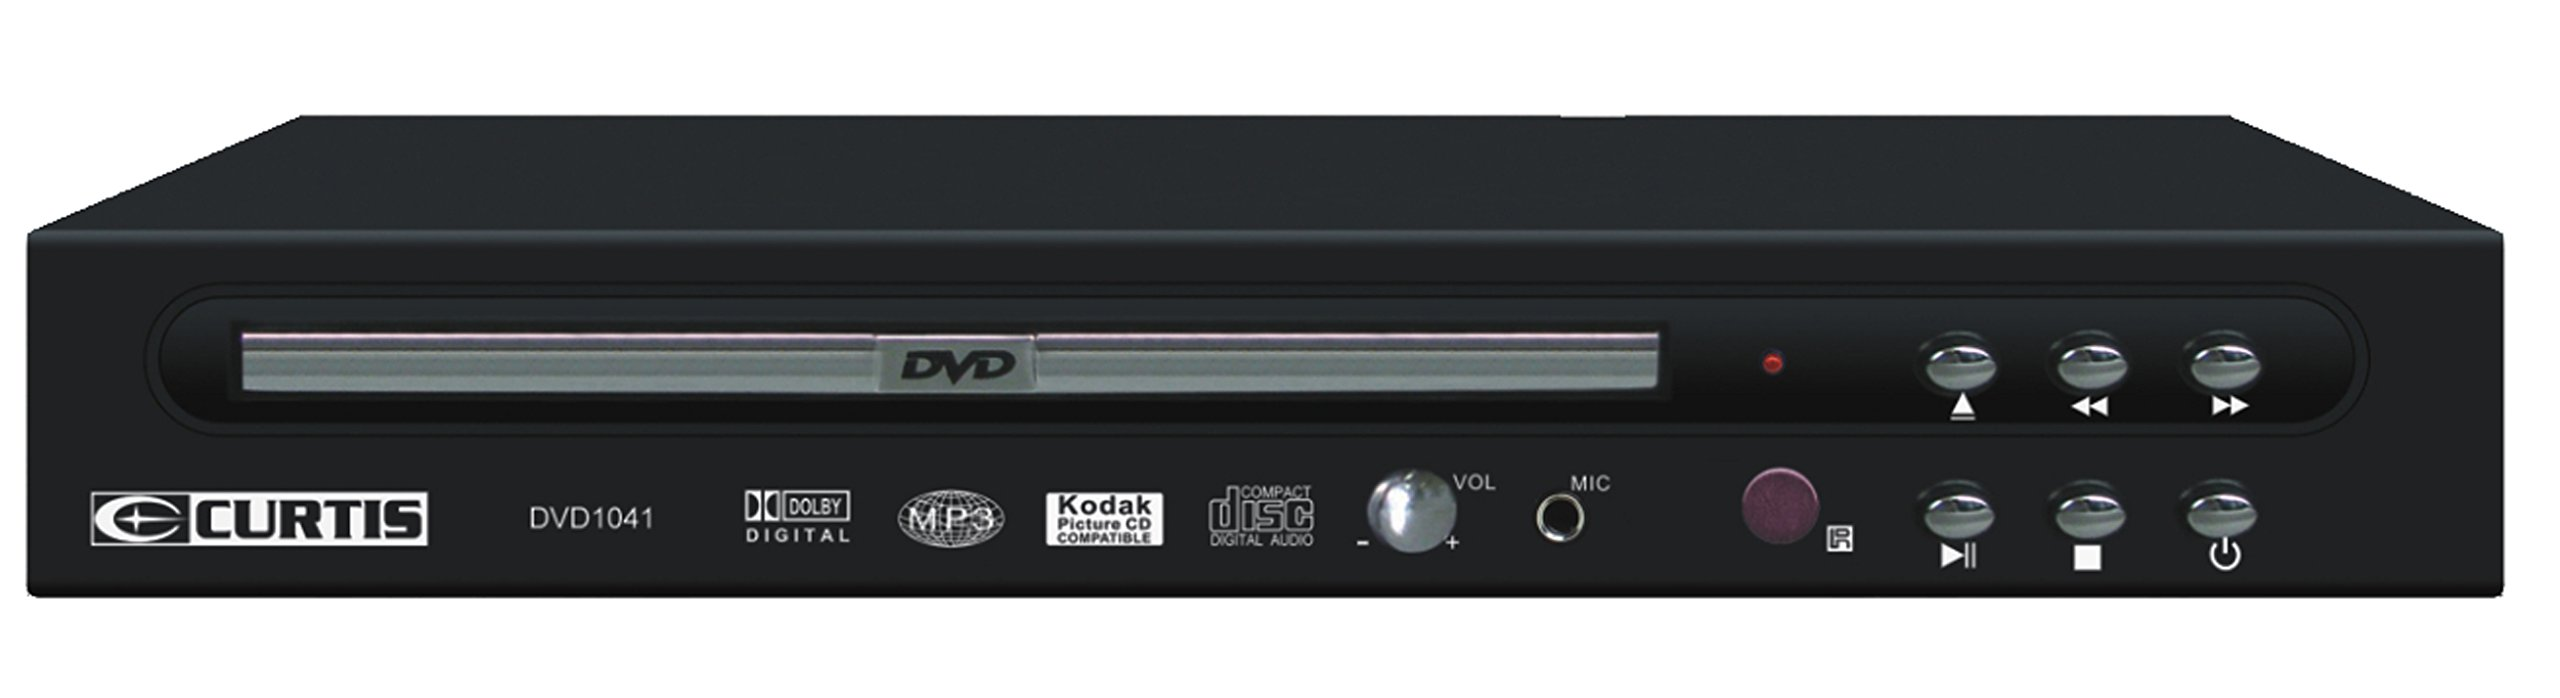 Curtis DVD1041 Compact DVD Player by Curtis